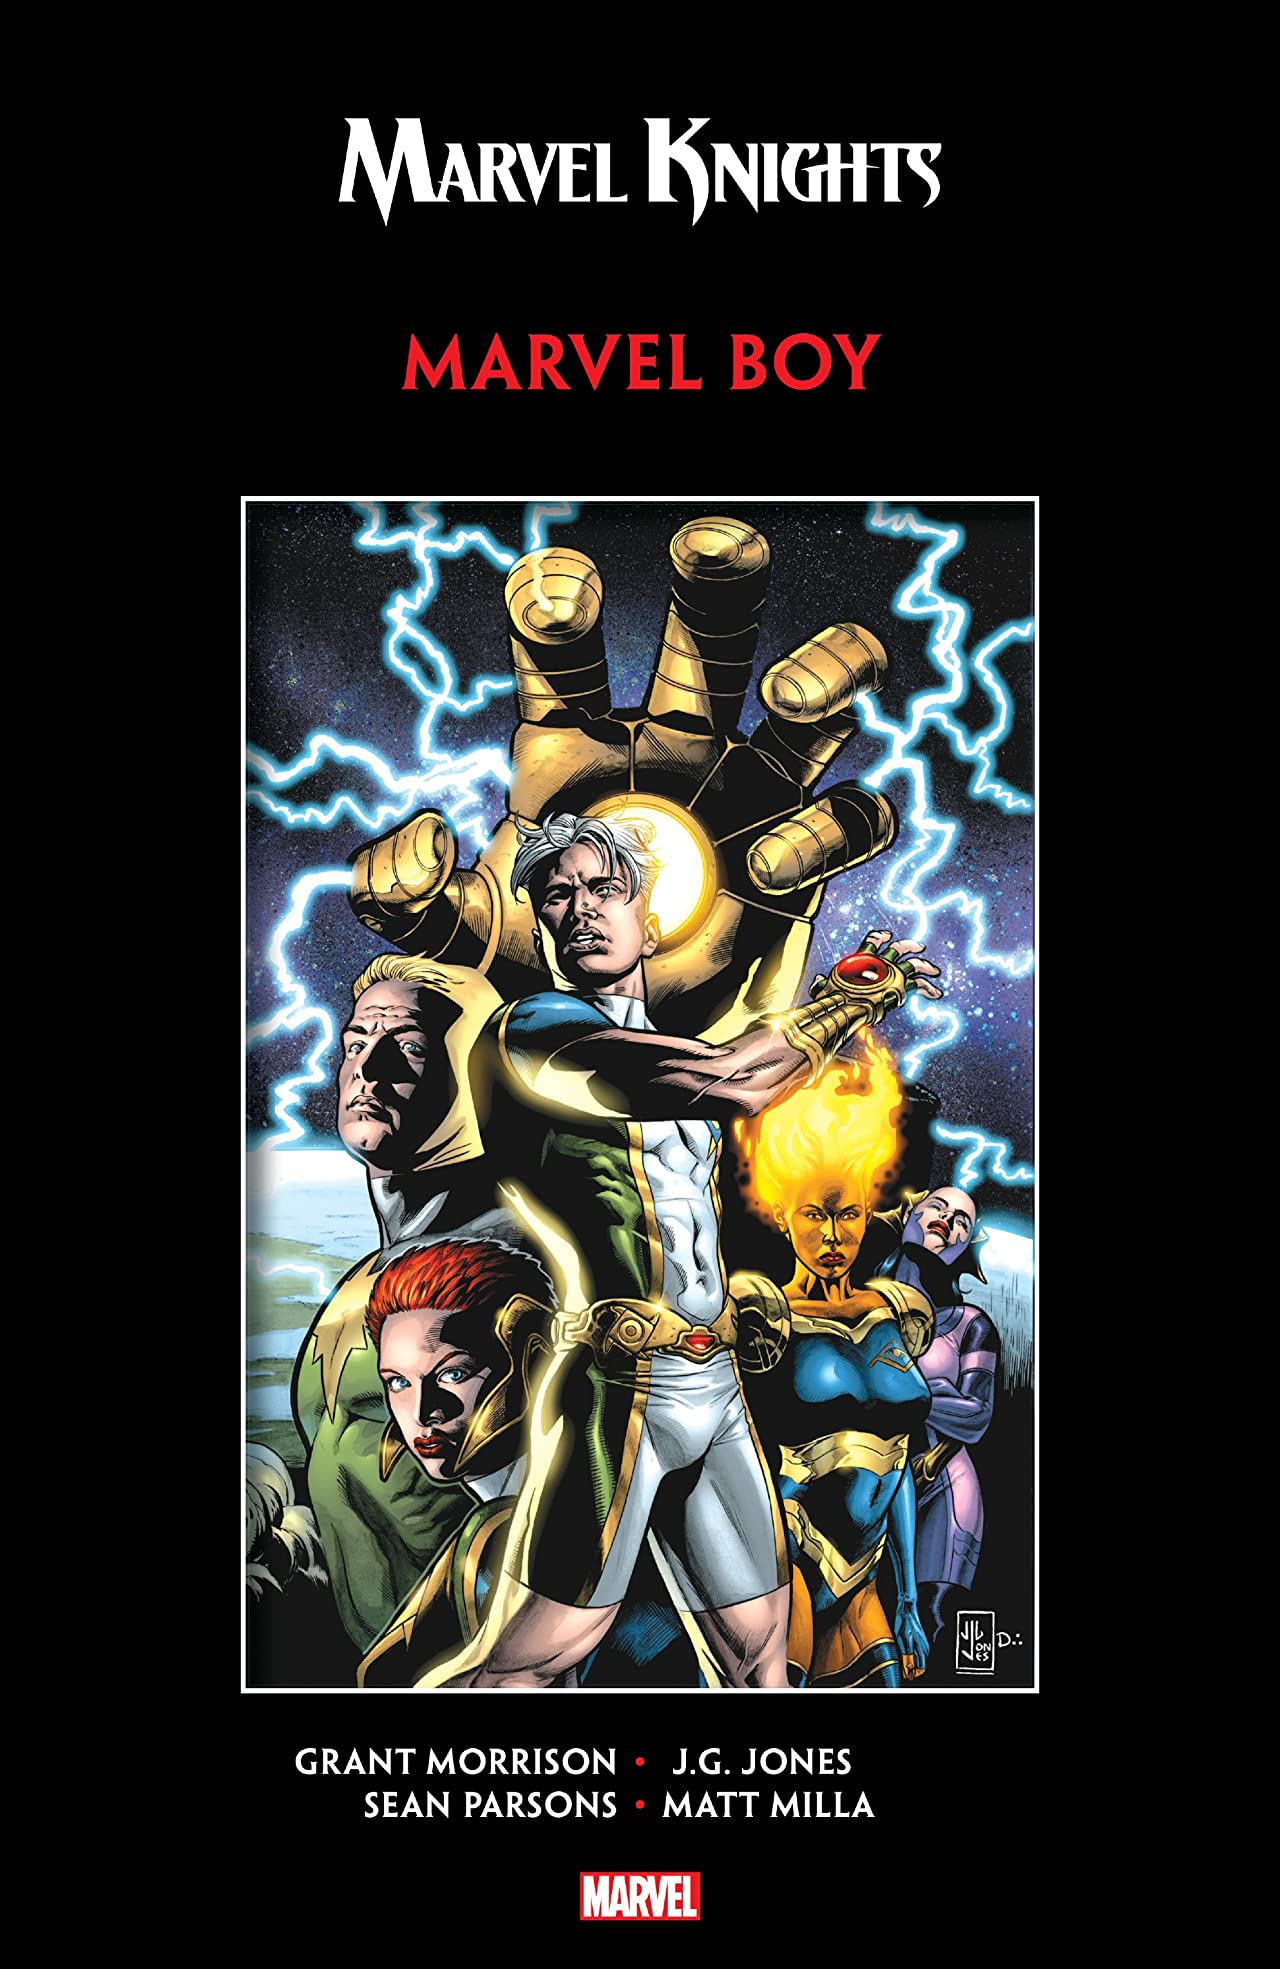 Marvel Knights Marvel Boy by Morrison & Jones